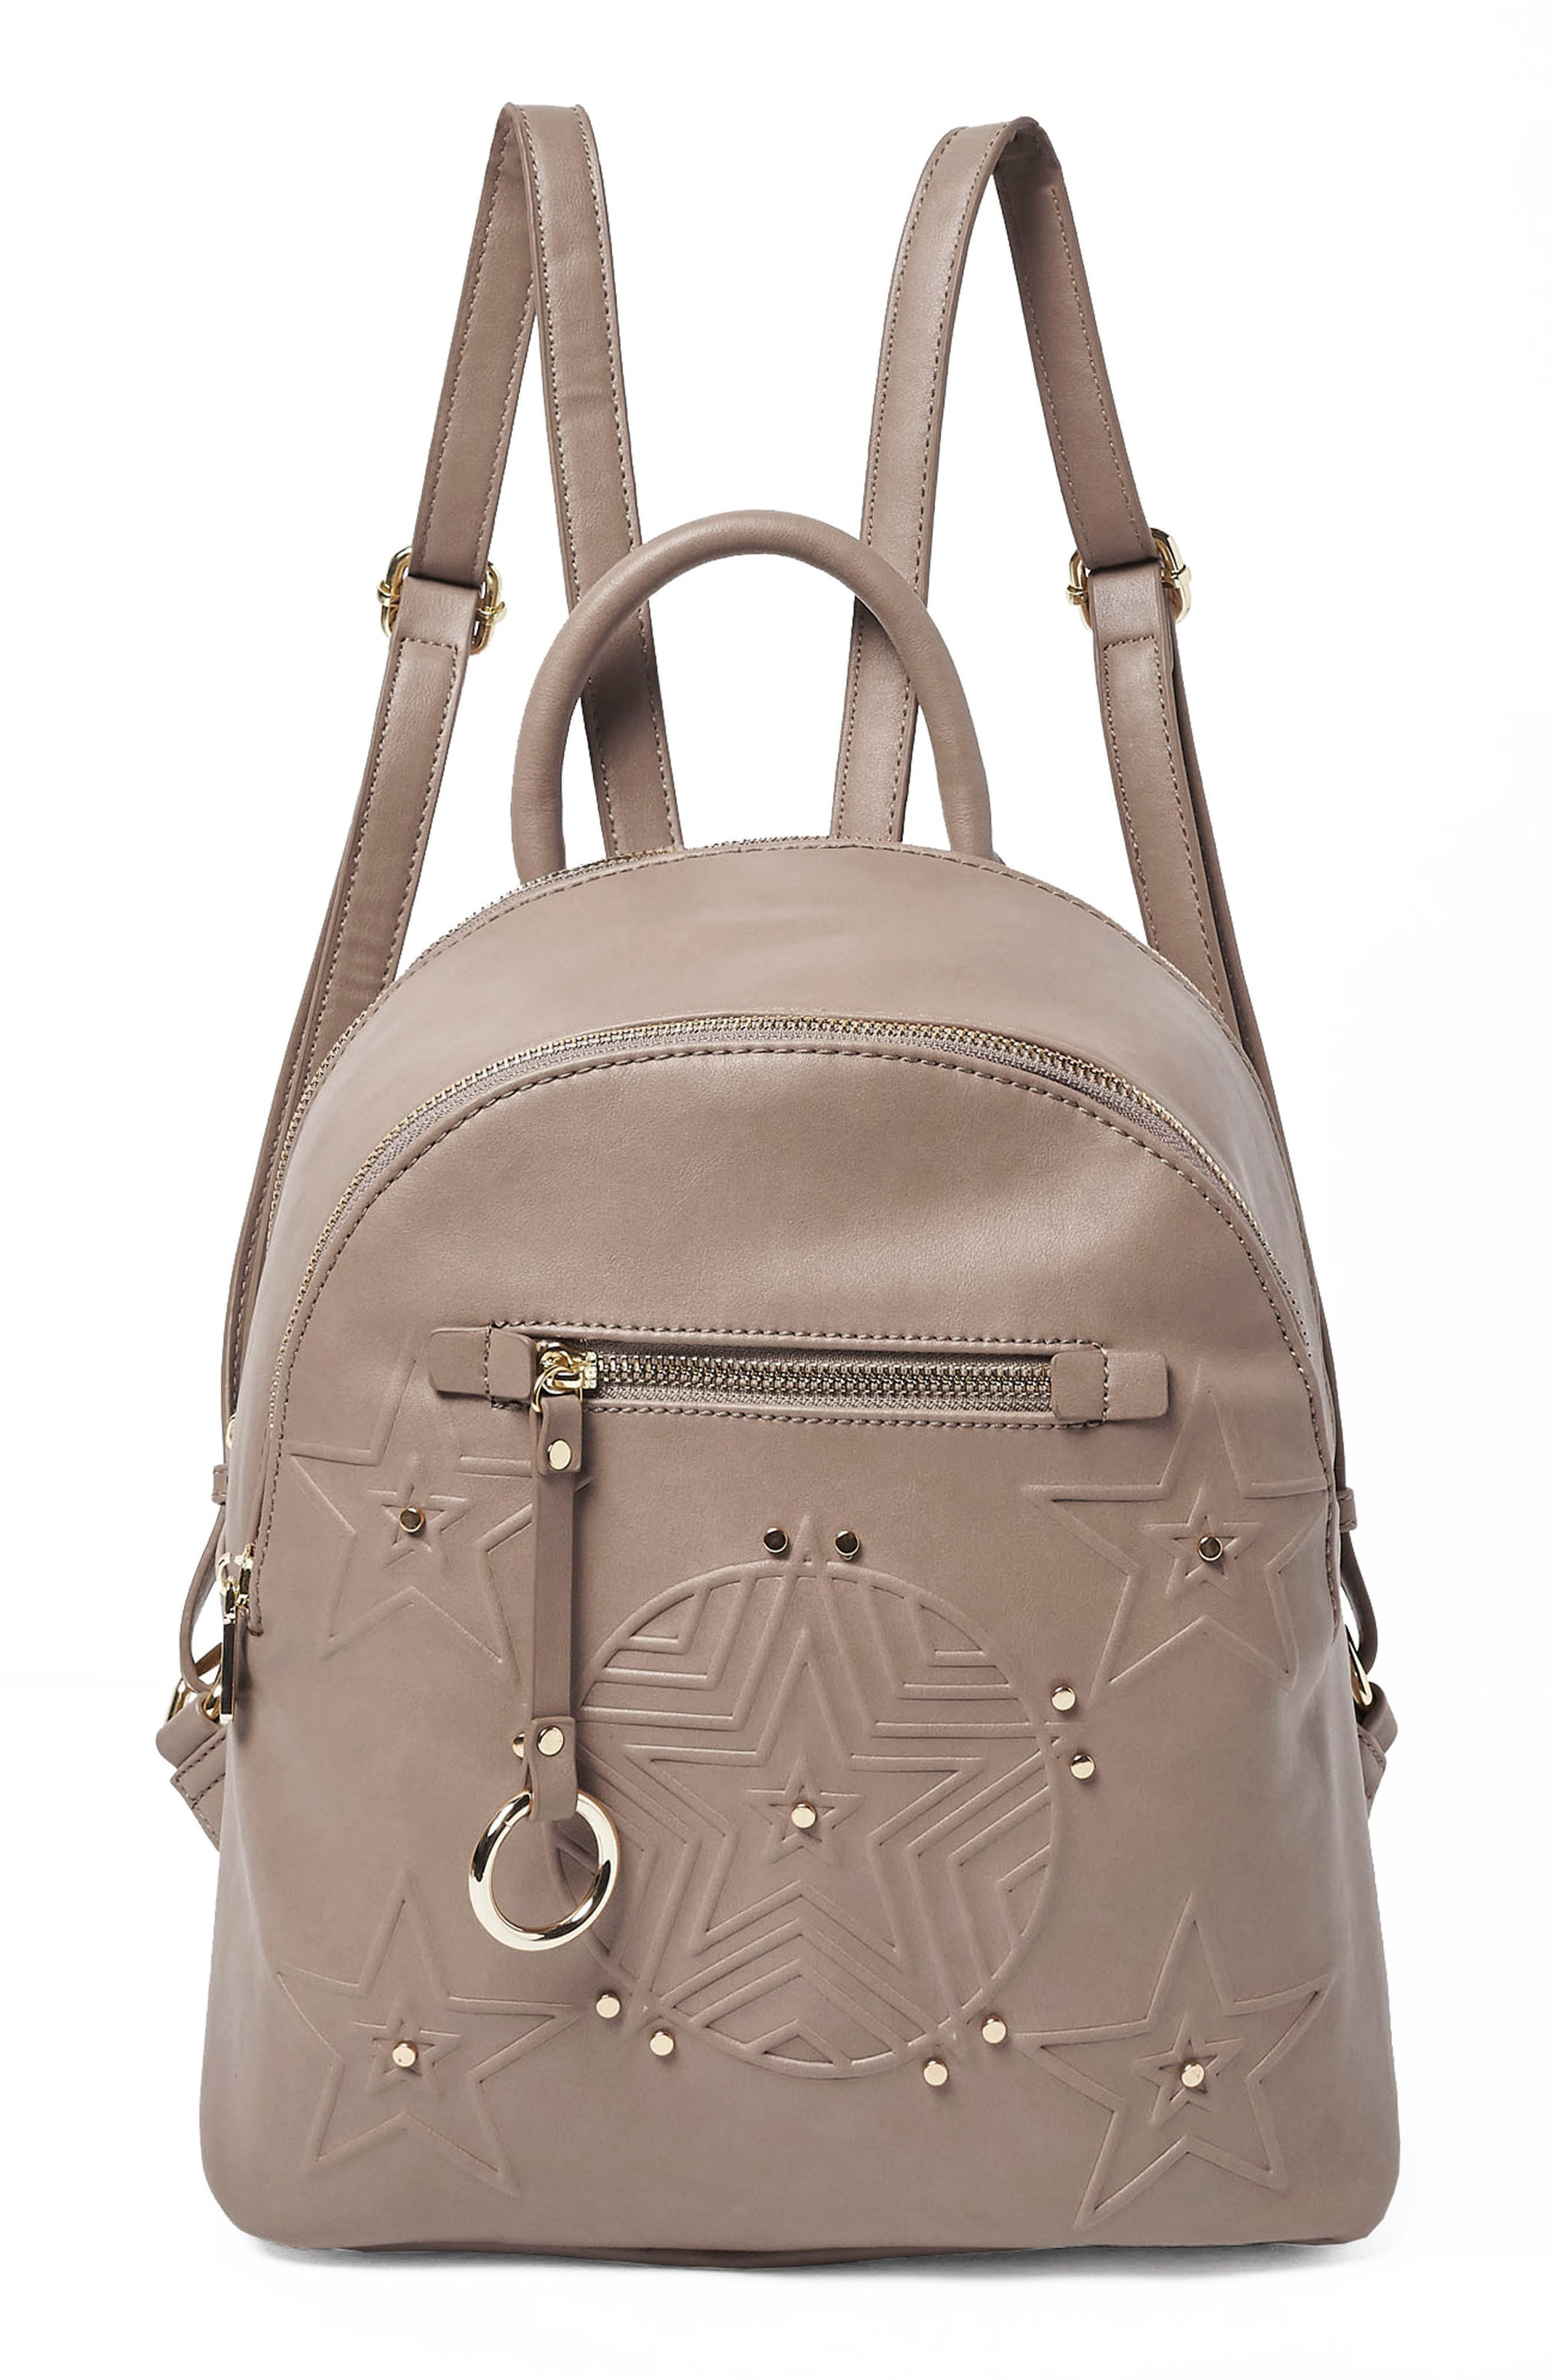 Urban Originals CELESTIAL VEGAN LEATHER BACKPACK - GREY